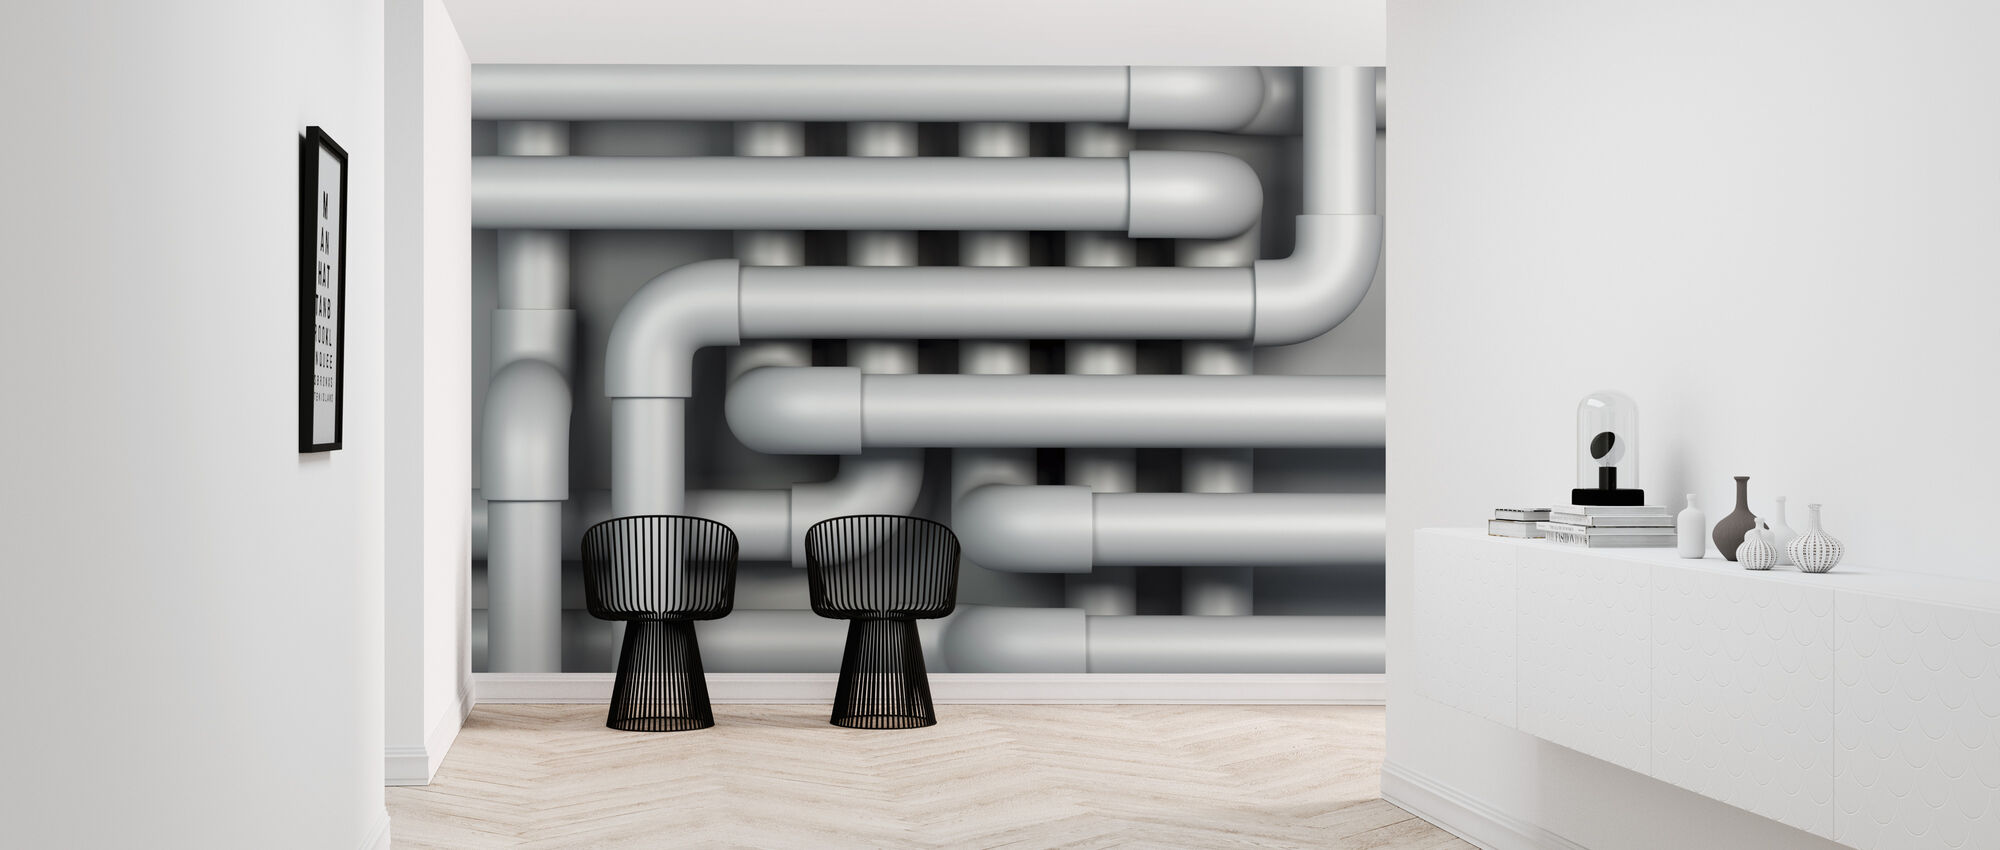 Drain Pipes - Wallpaper - Hallway